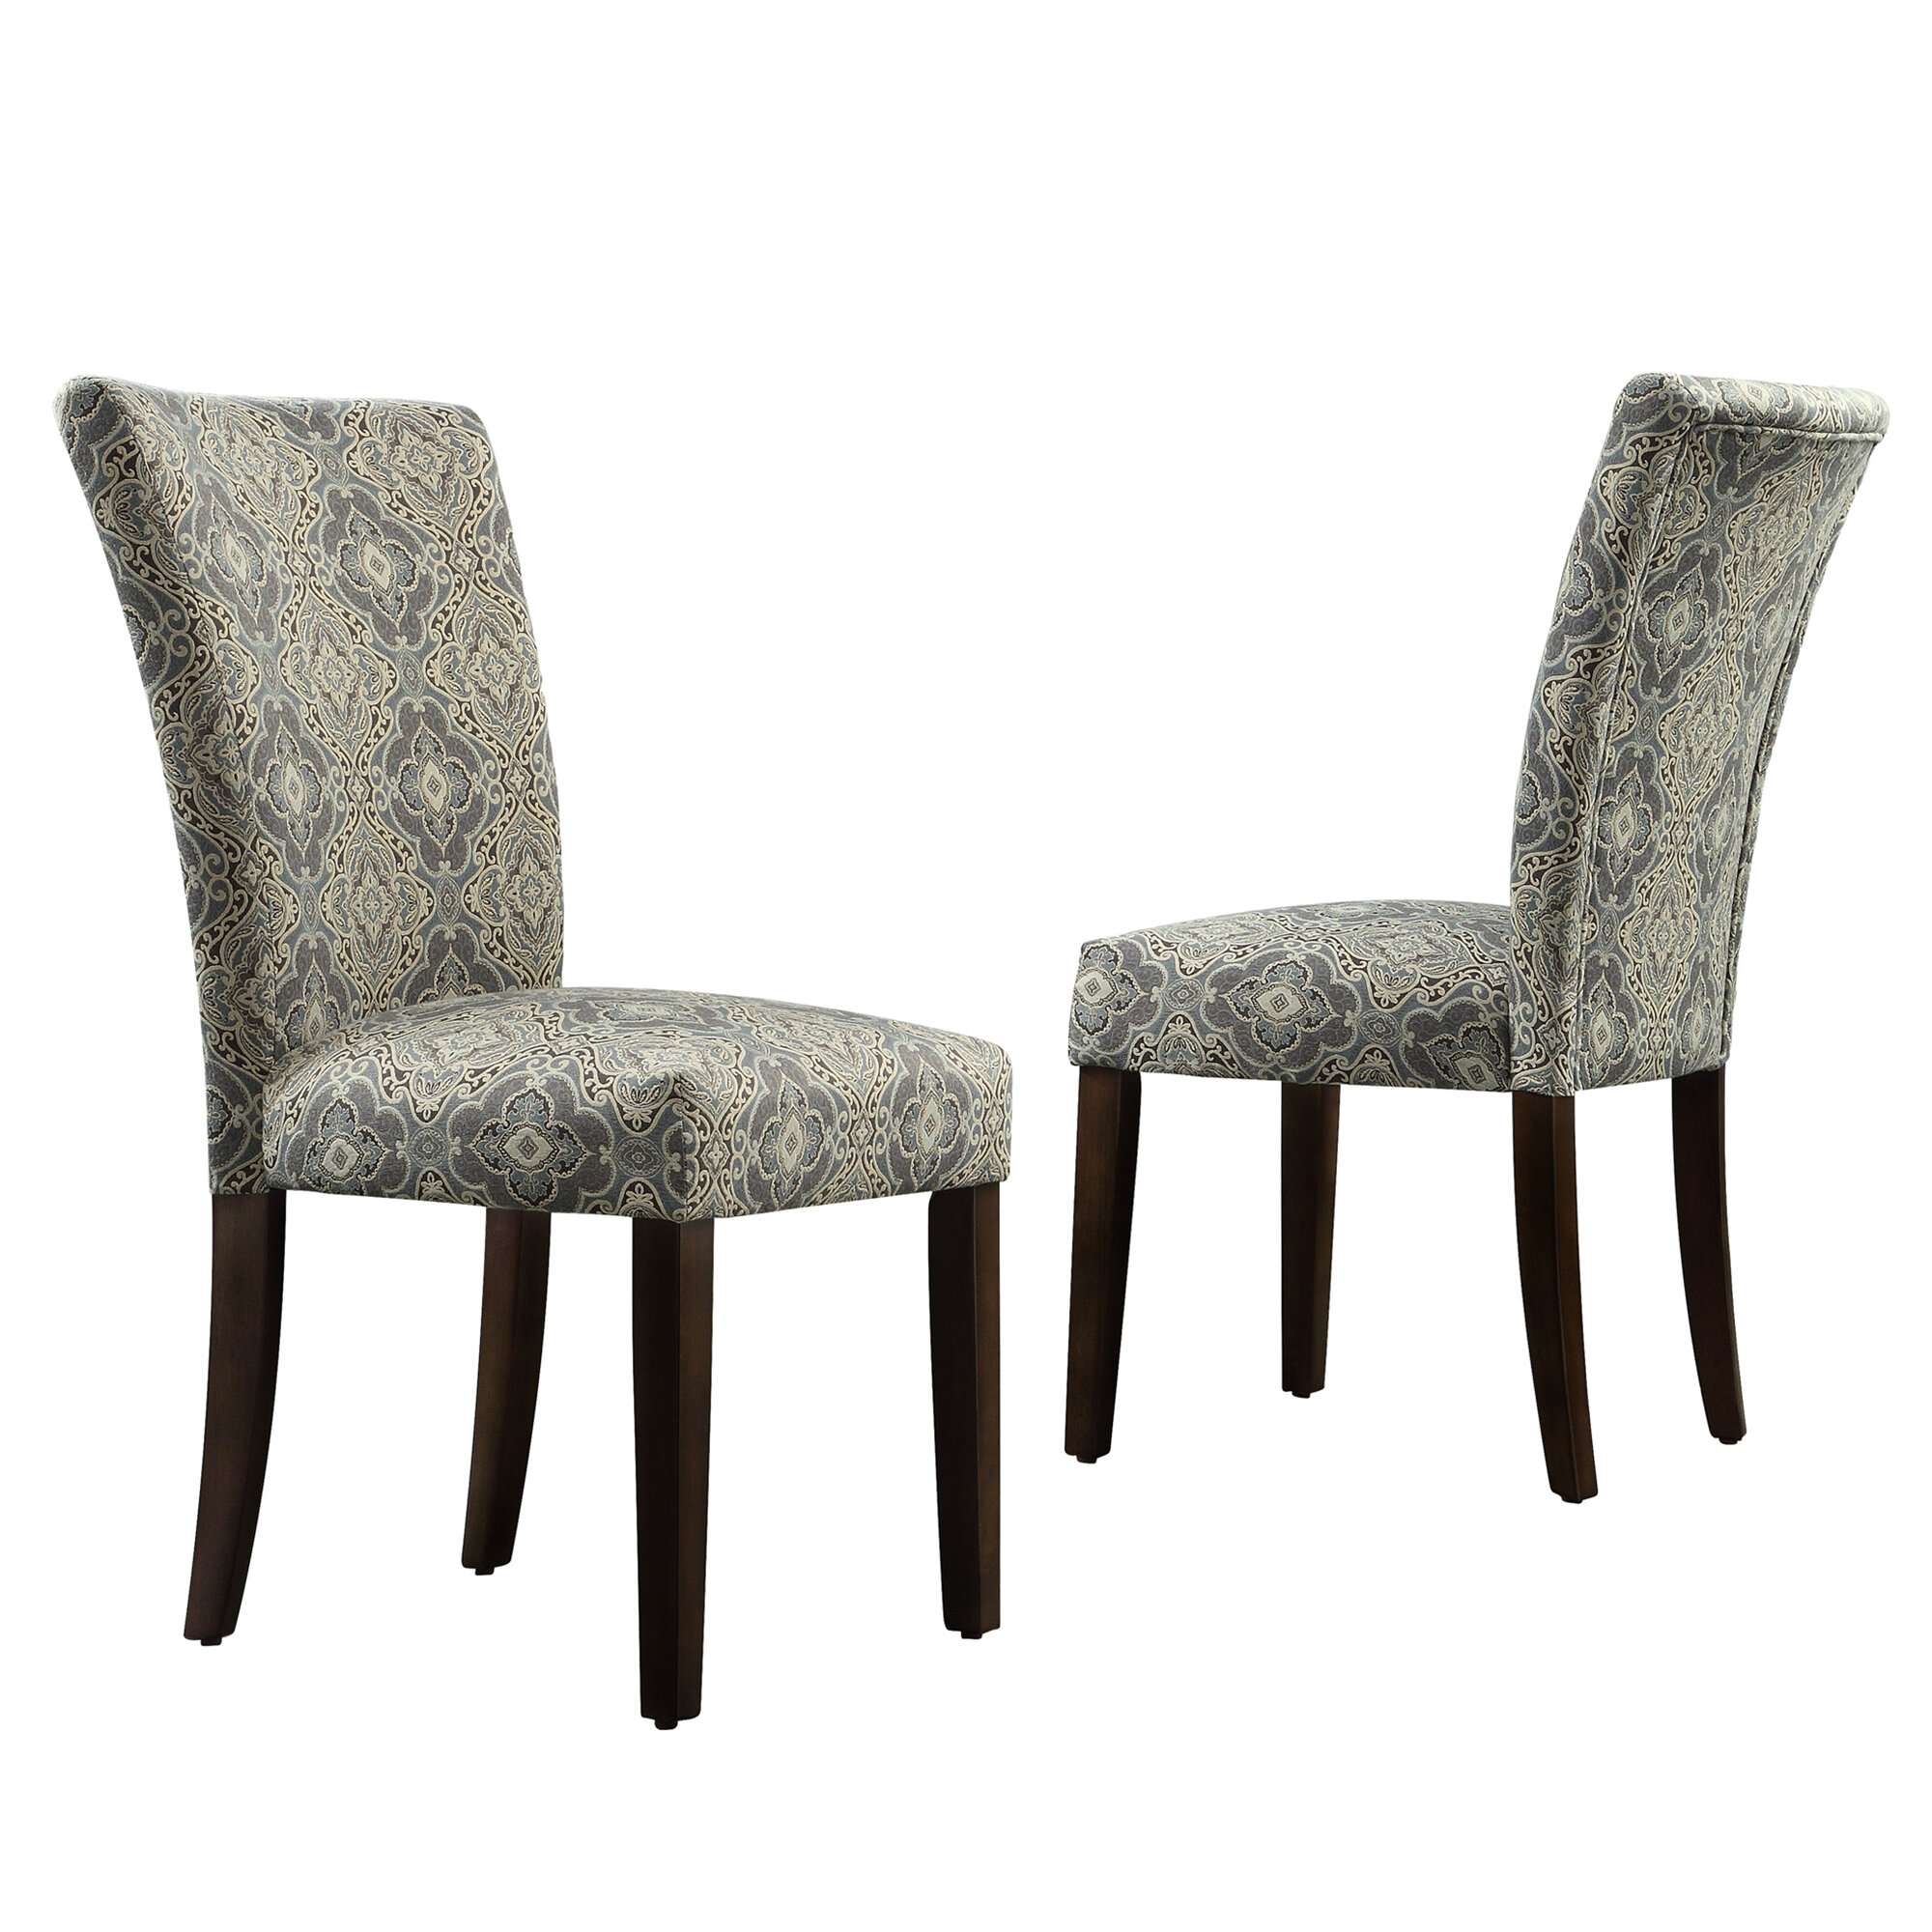 Picture of: Willa Arlo Interiors Sture Damask Upholstered Dining Chair Reviews